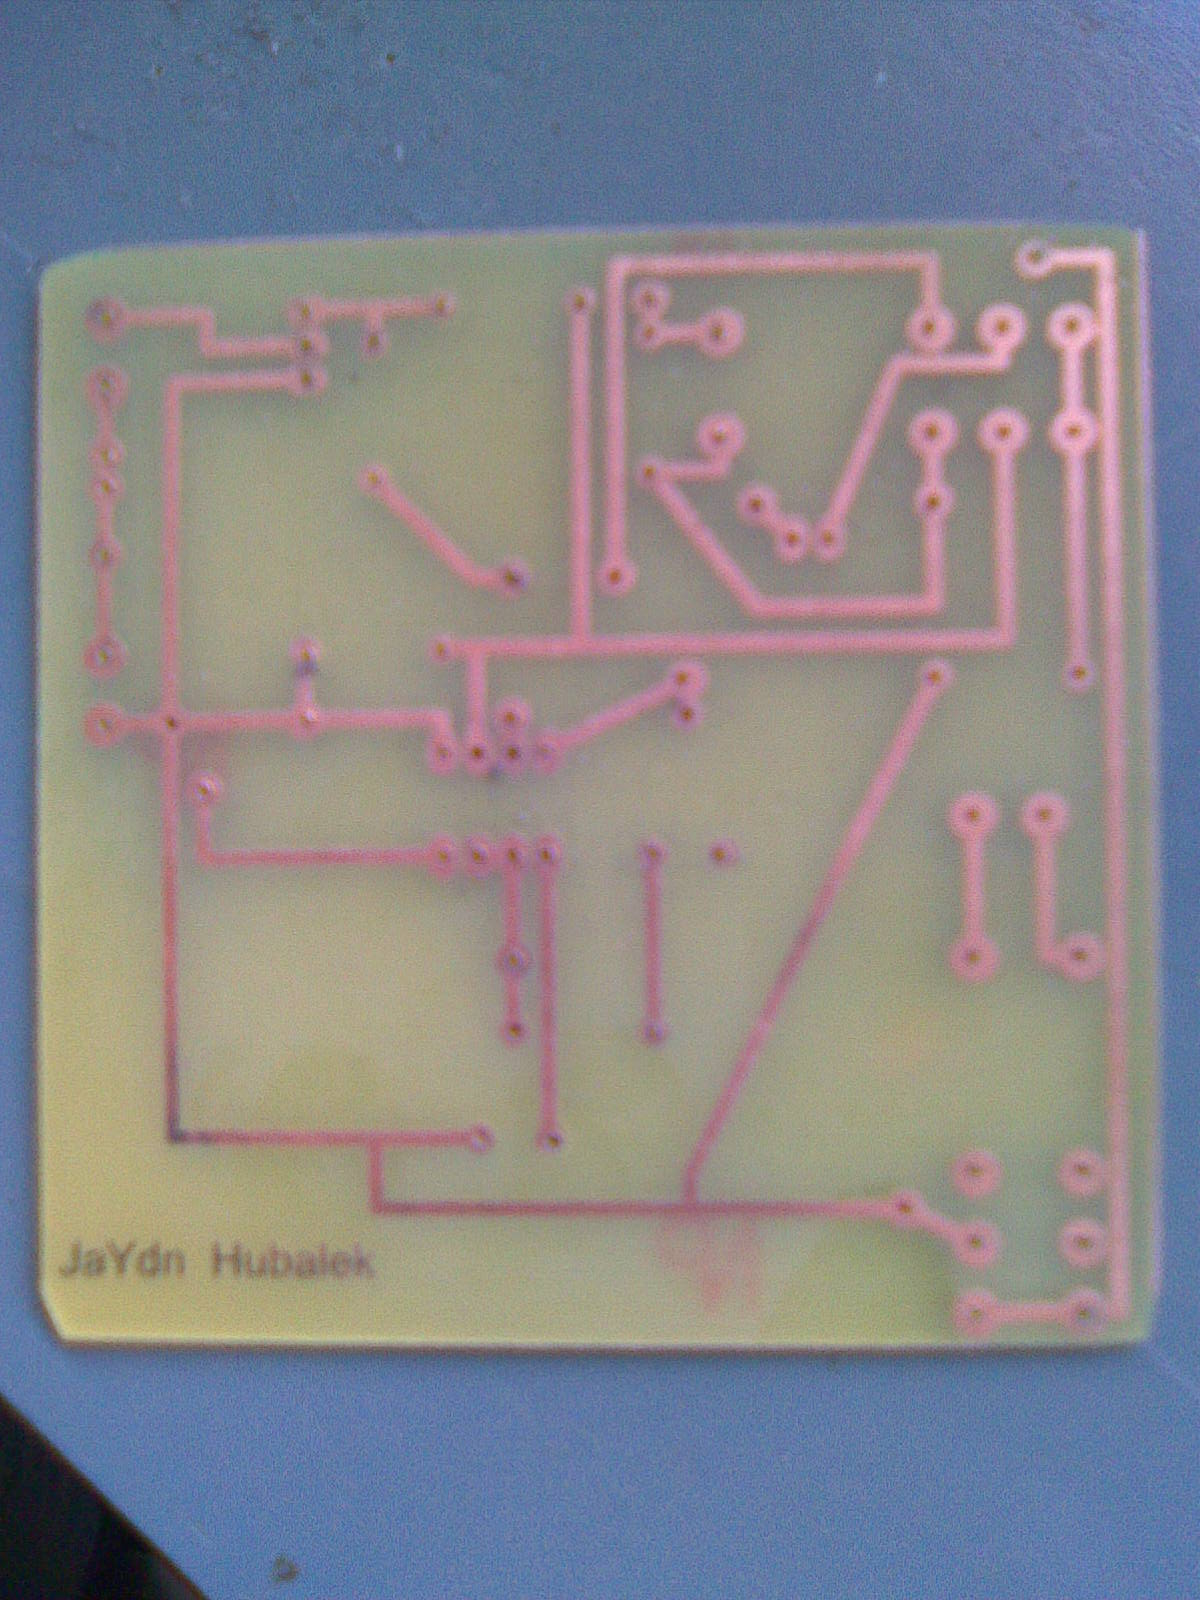 Picture of Components and Pcb